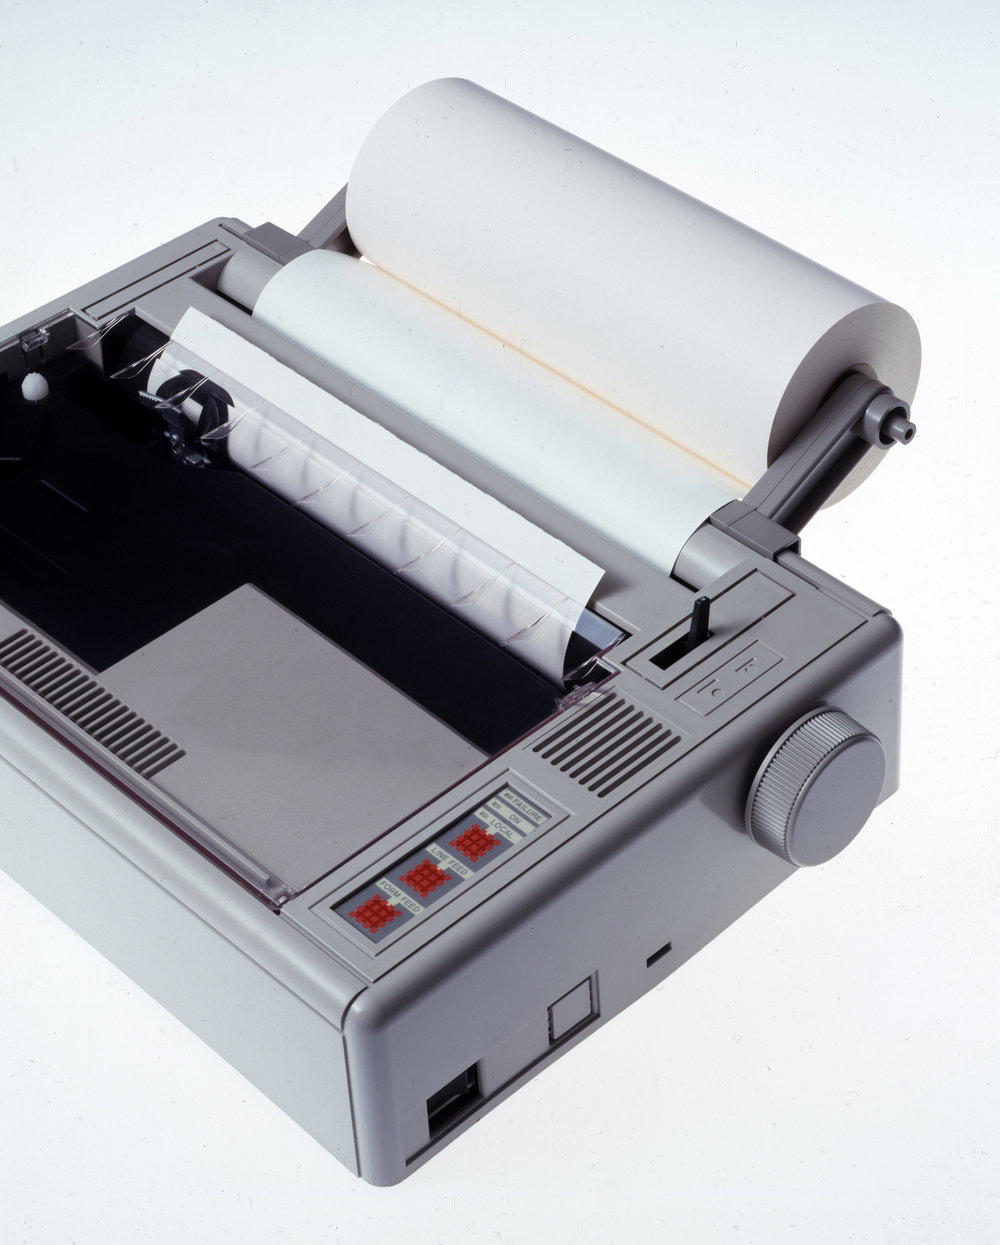 2Olivetti_Print_DM_Family_Photos (12).jpg